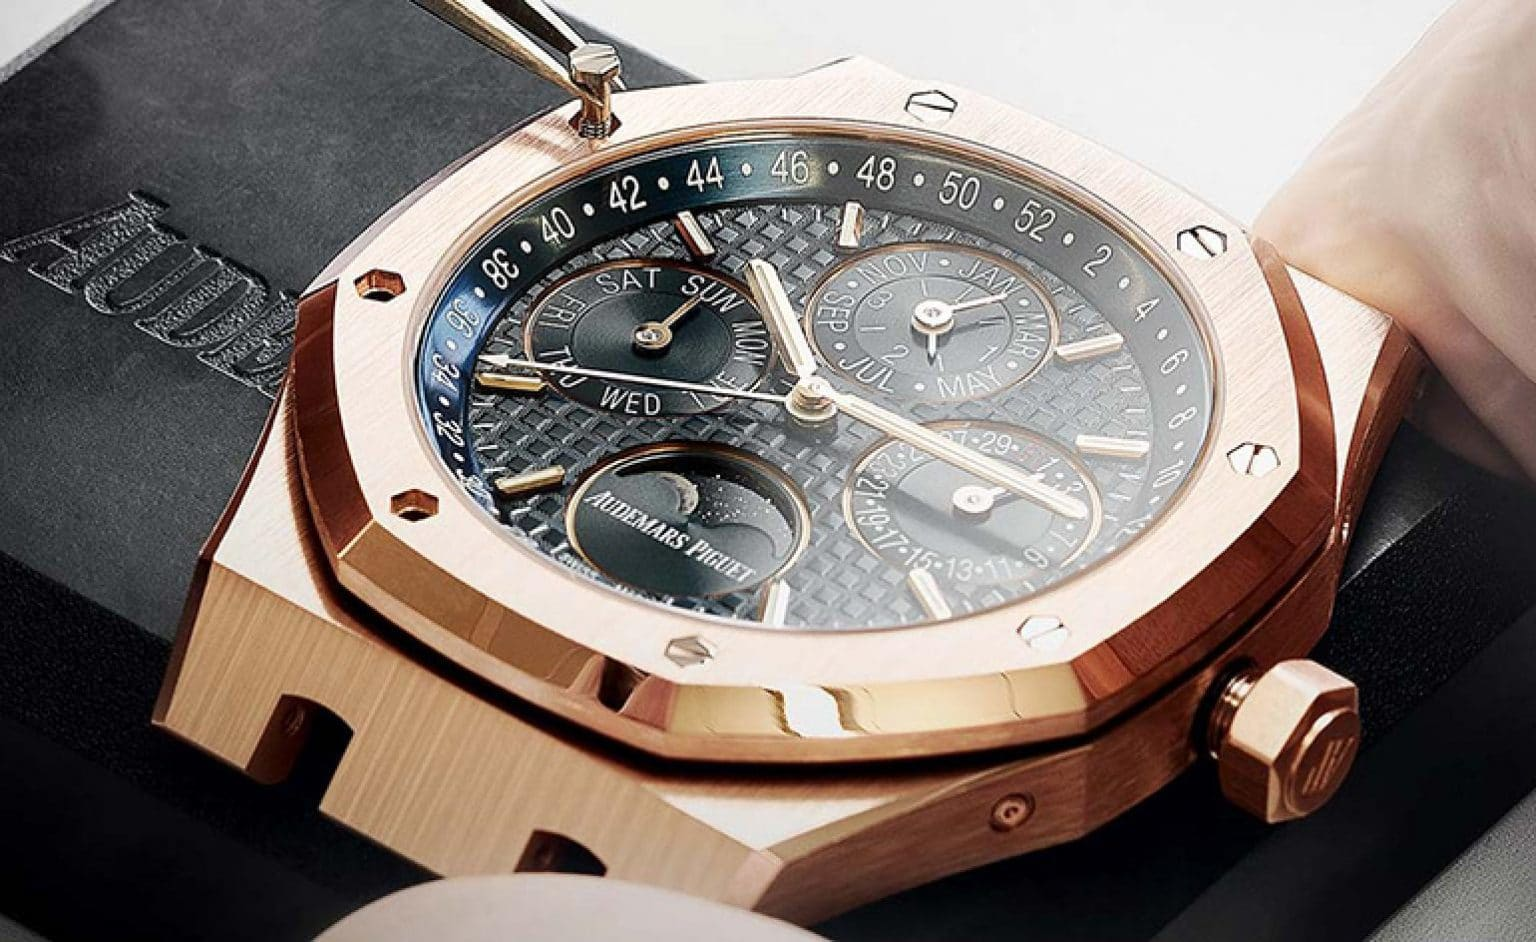 Find Out Best Replica Watch Prices Now and Finalize Your Style